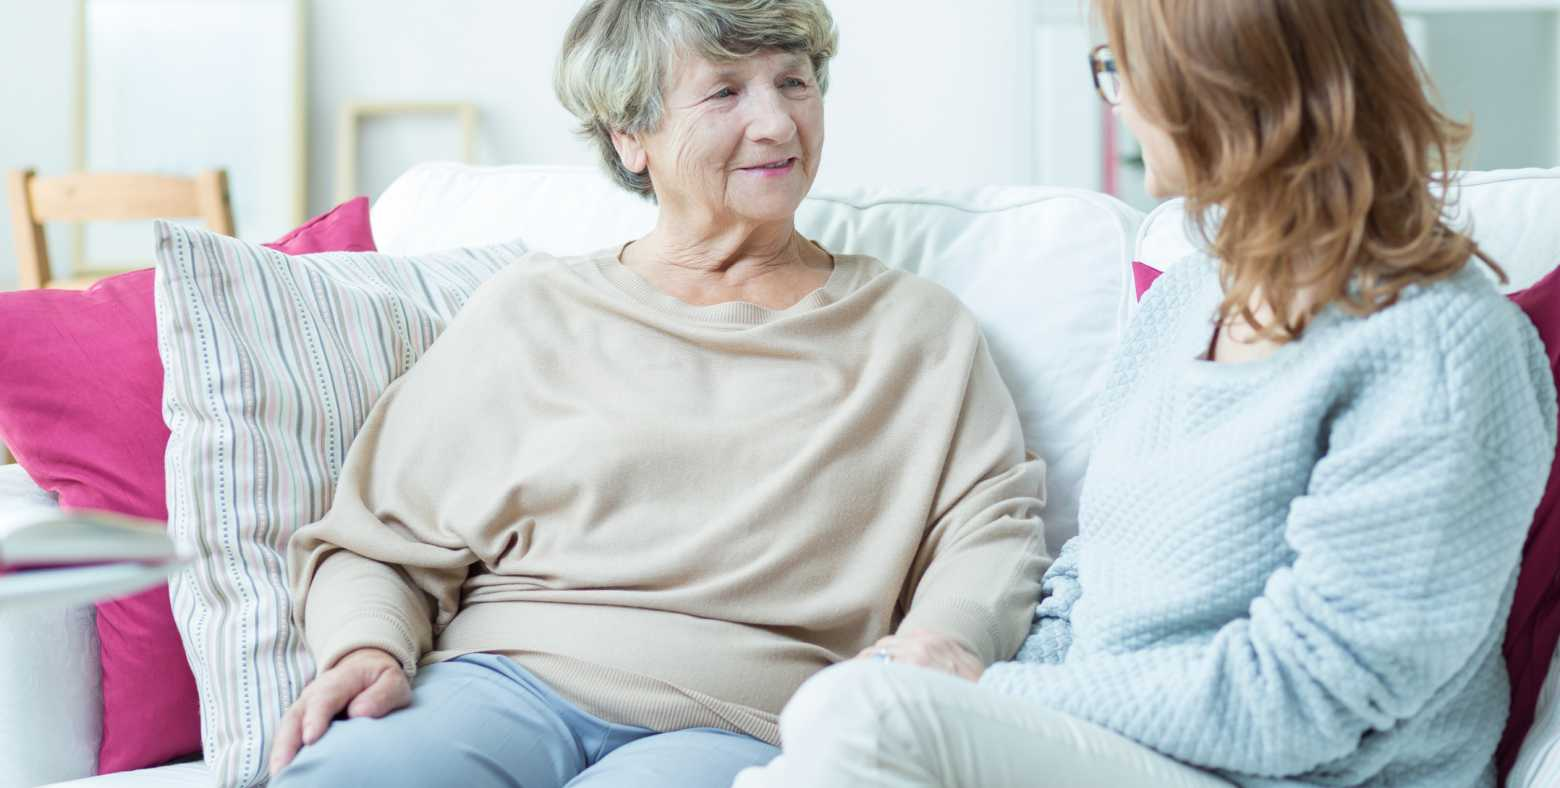 young woman and elderly woman talking on couch